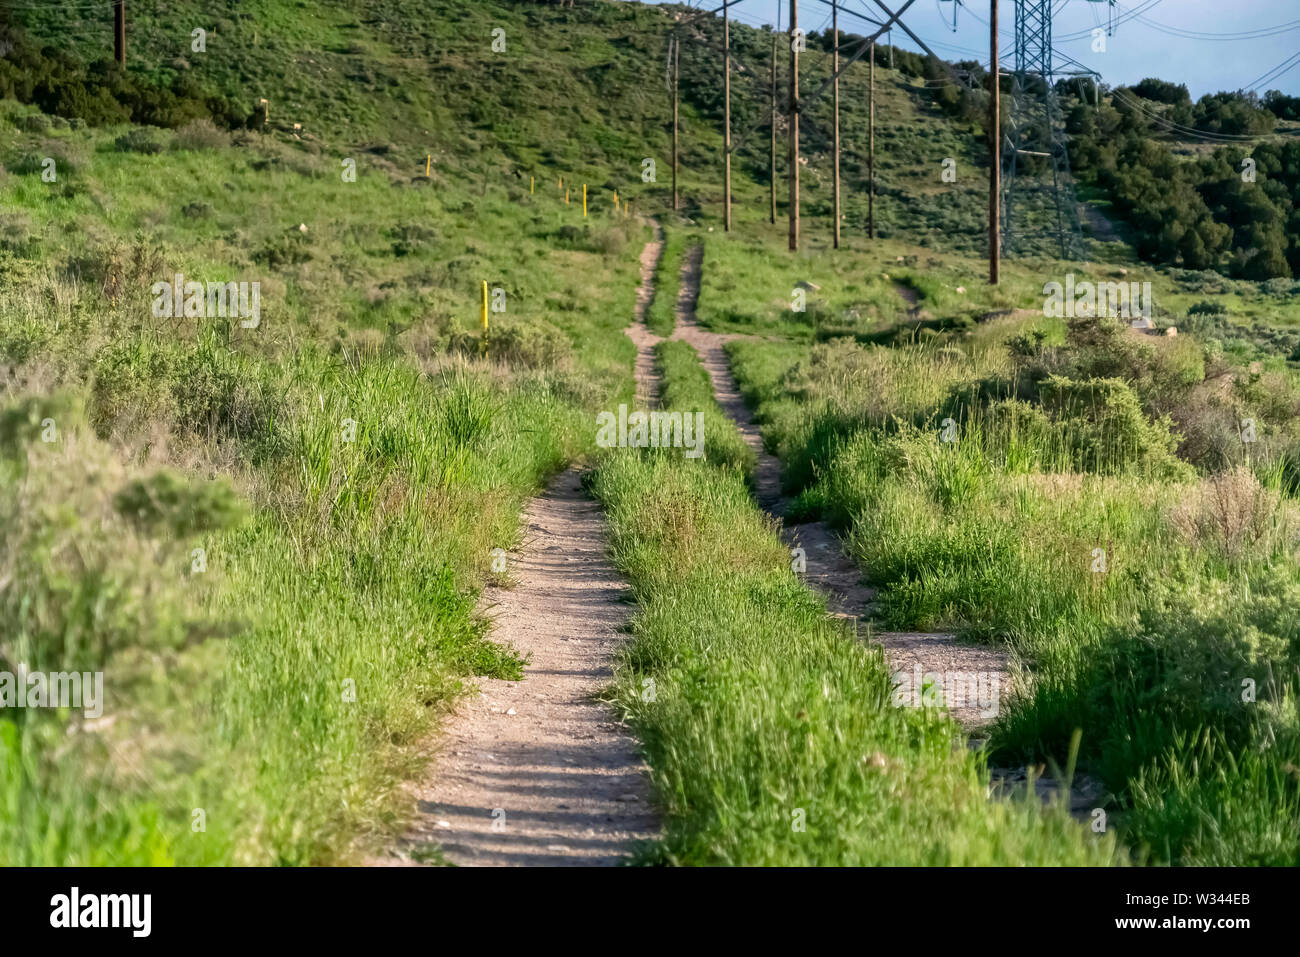 Close up of narrow trails of a grassy mountain terrain on a sunny day. Electrical towers and cables against a slope and blue sky can be seen in the ba - Stock Image